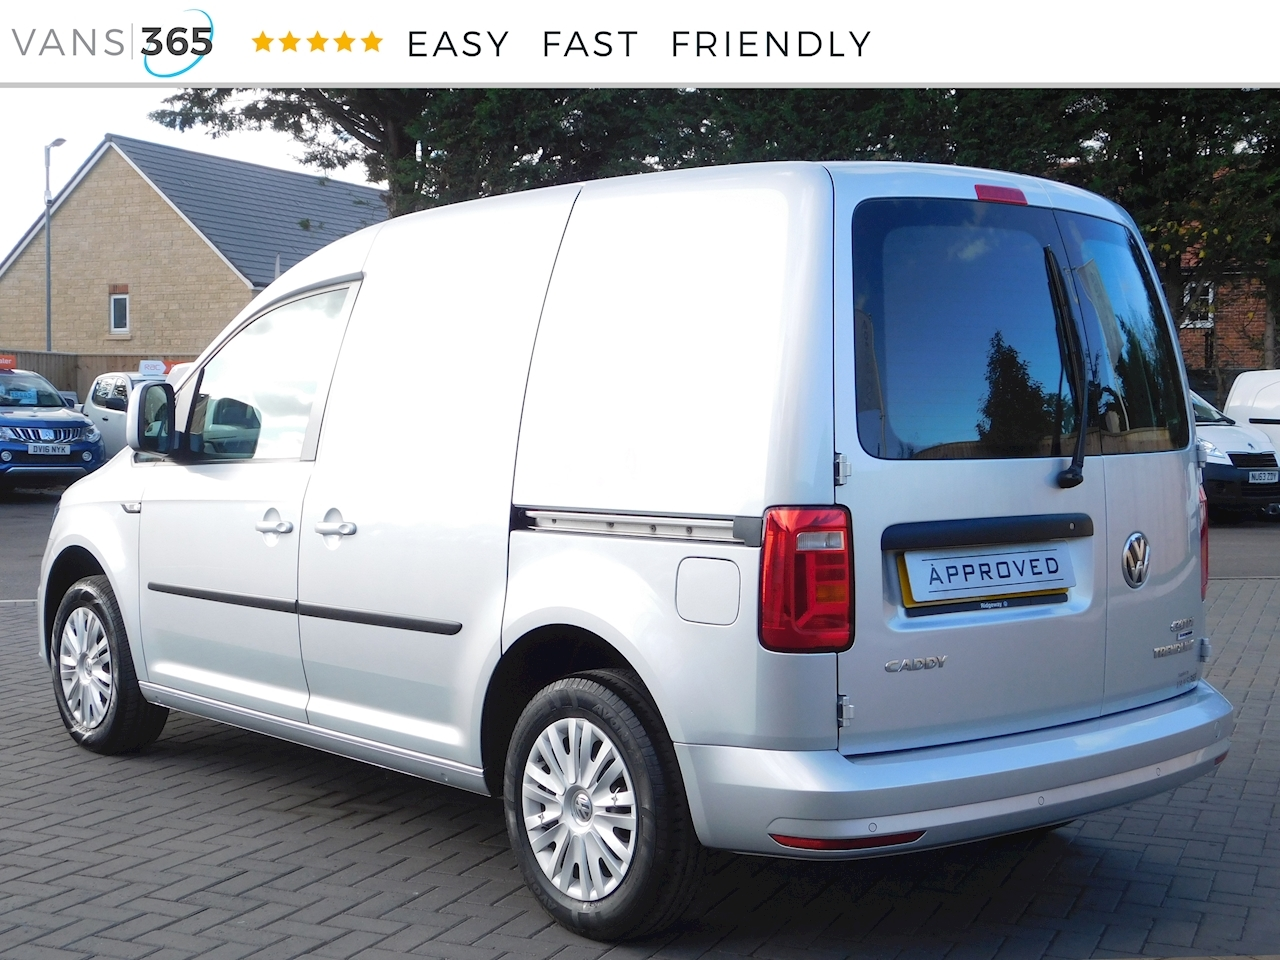 Used 2015 Volkswagen Caddy C20 2.0 TDi Trendline SWB 5dr Panel Van Manual  Diesel For Sale in Bristol (U247) | Vans 365